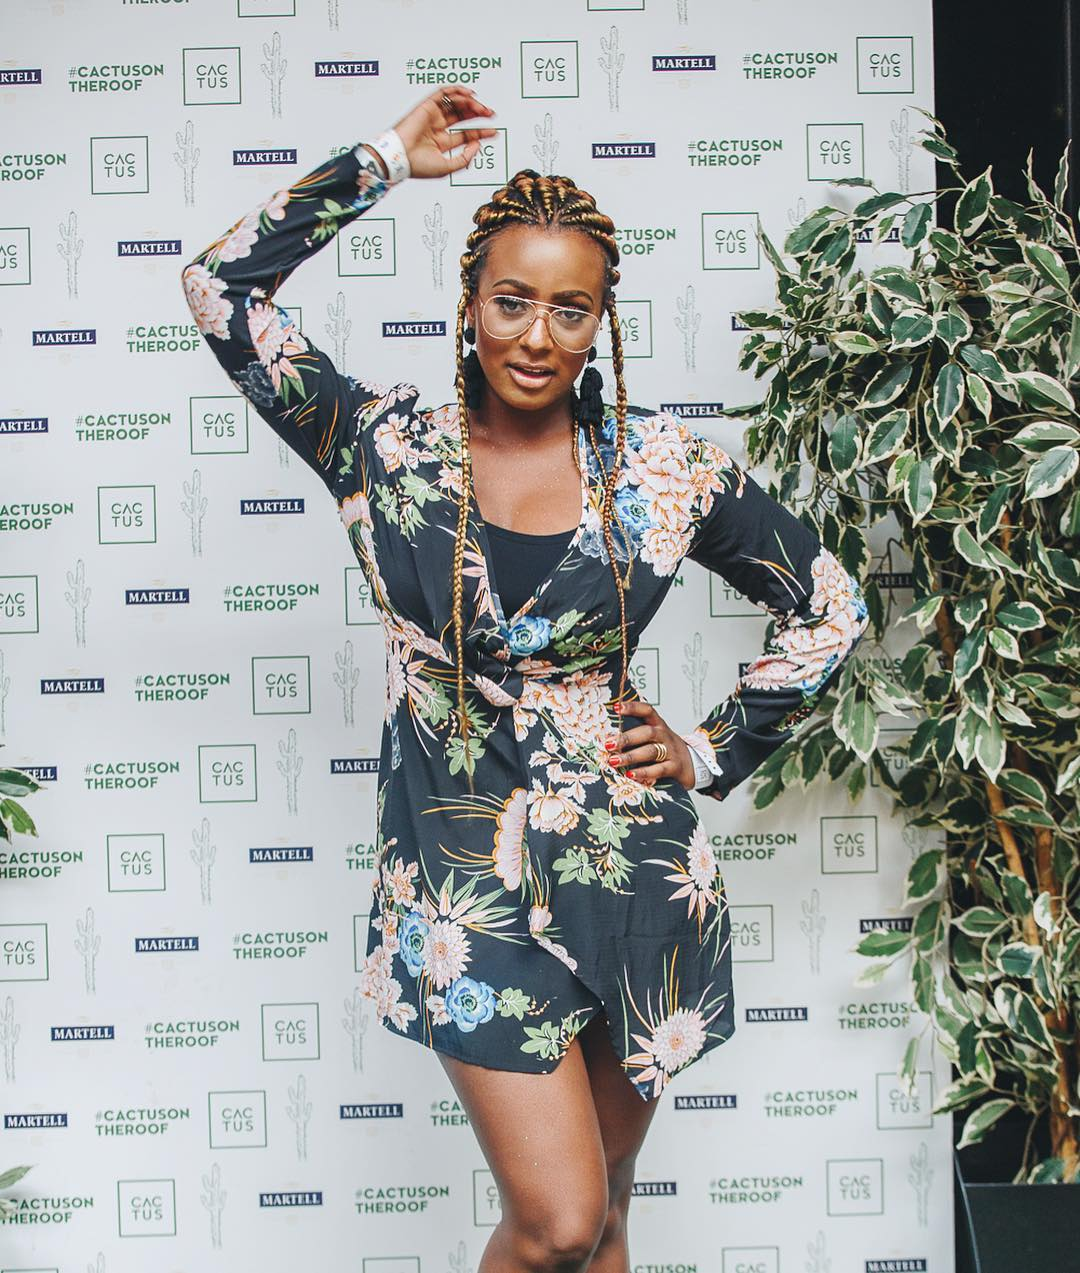 checkout-dj-cuppy-s-epi-replies-fan-who-said-he-wants-to-get-her-pregnant